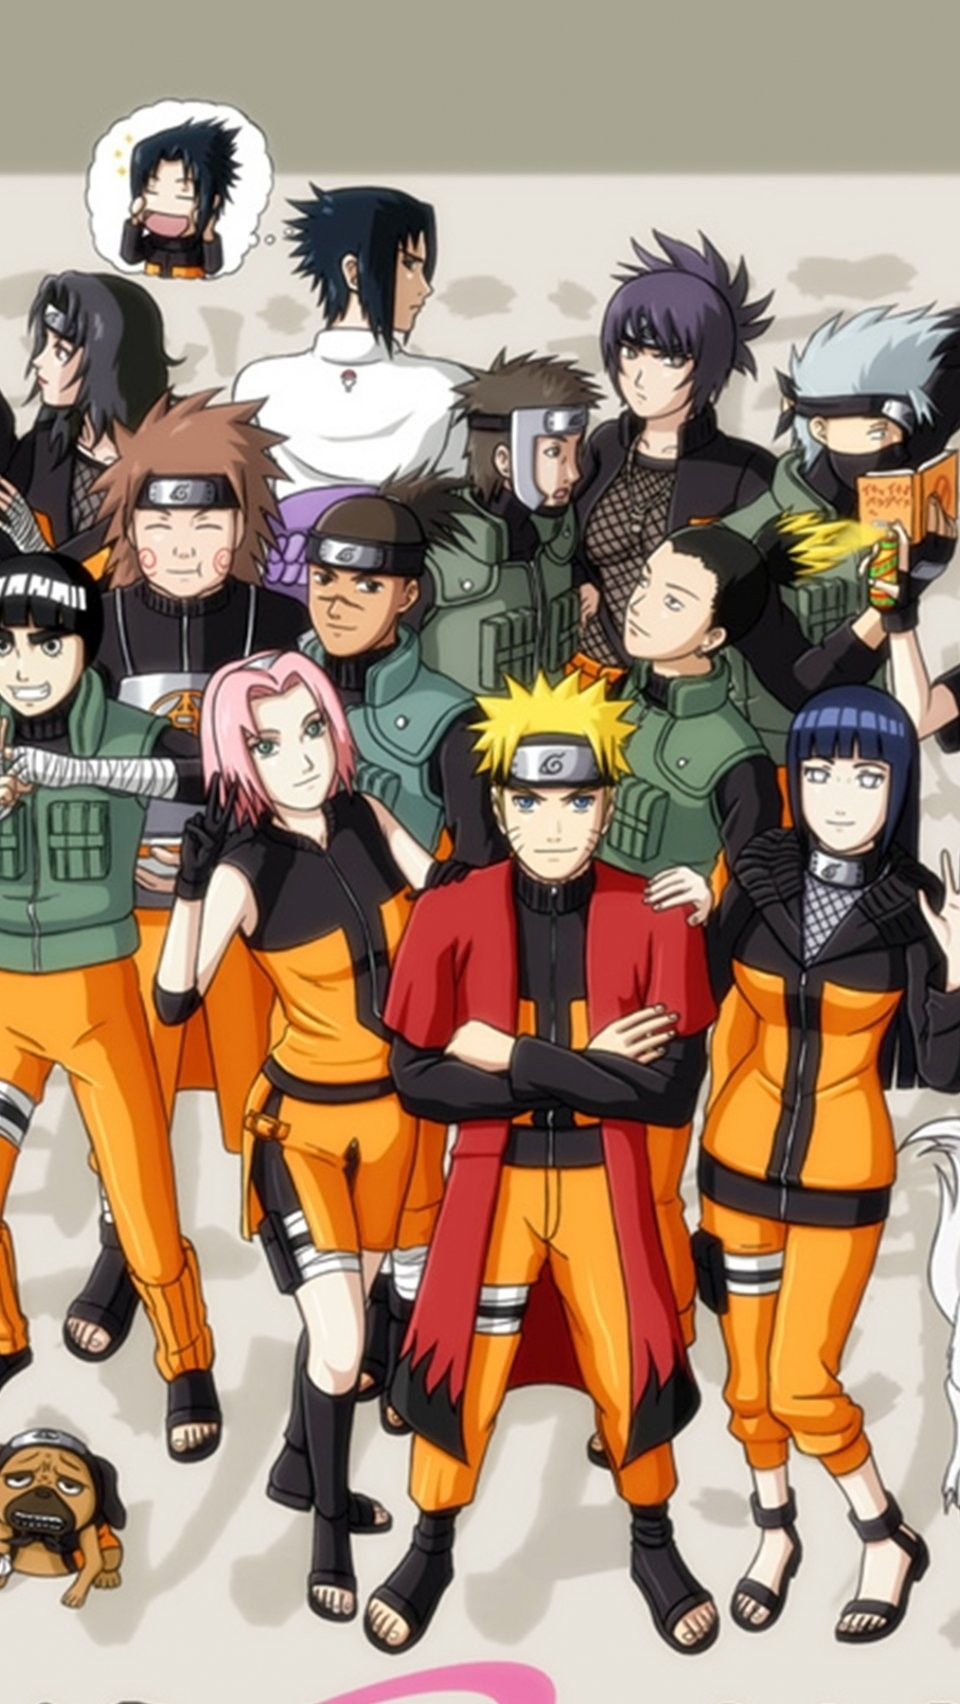 naruto style worldwide iPhone 6 wallpaper Naruto iPhone